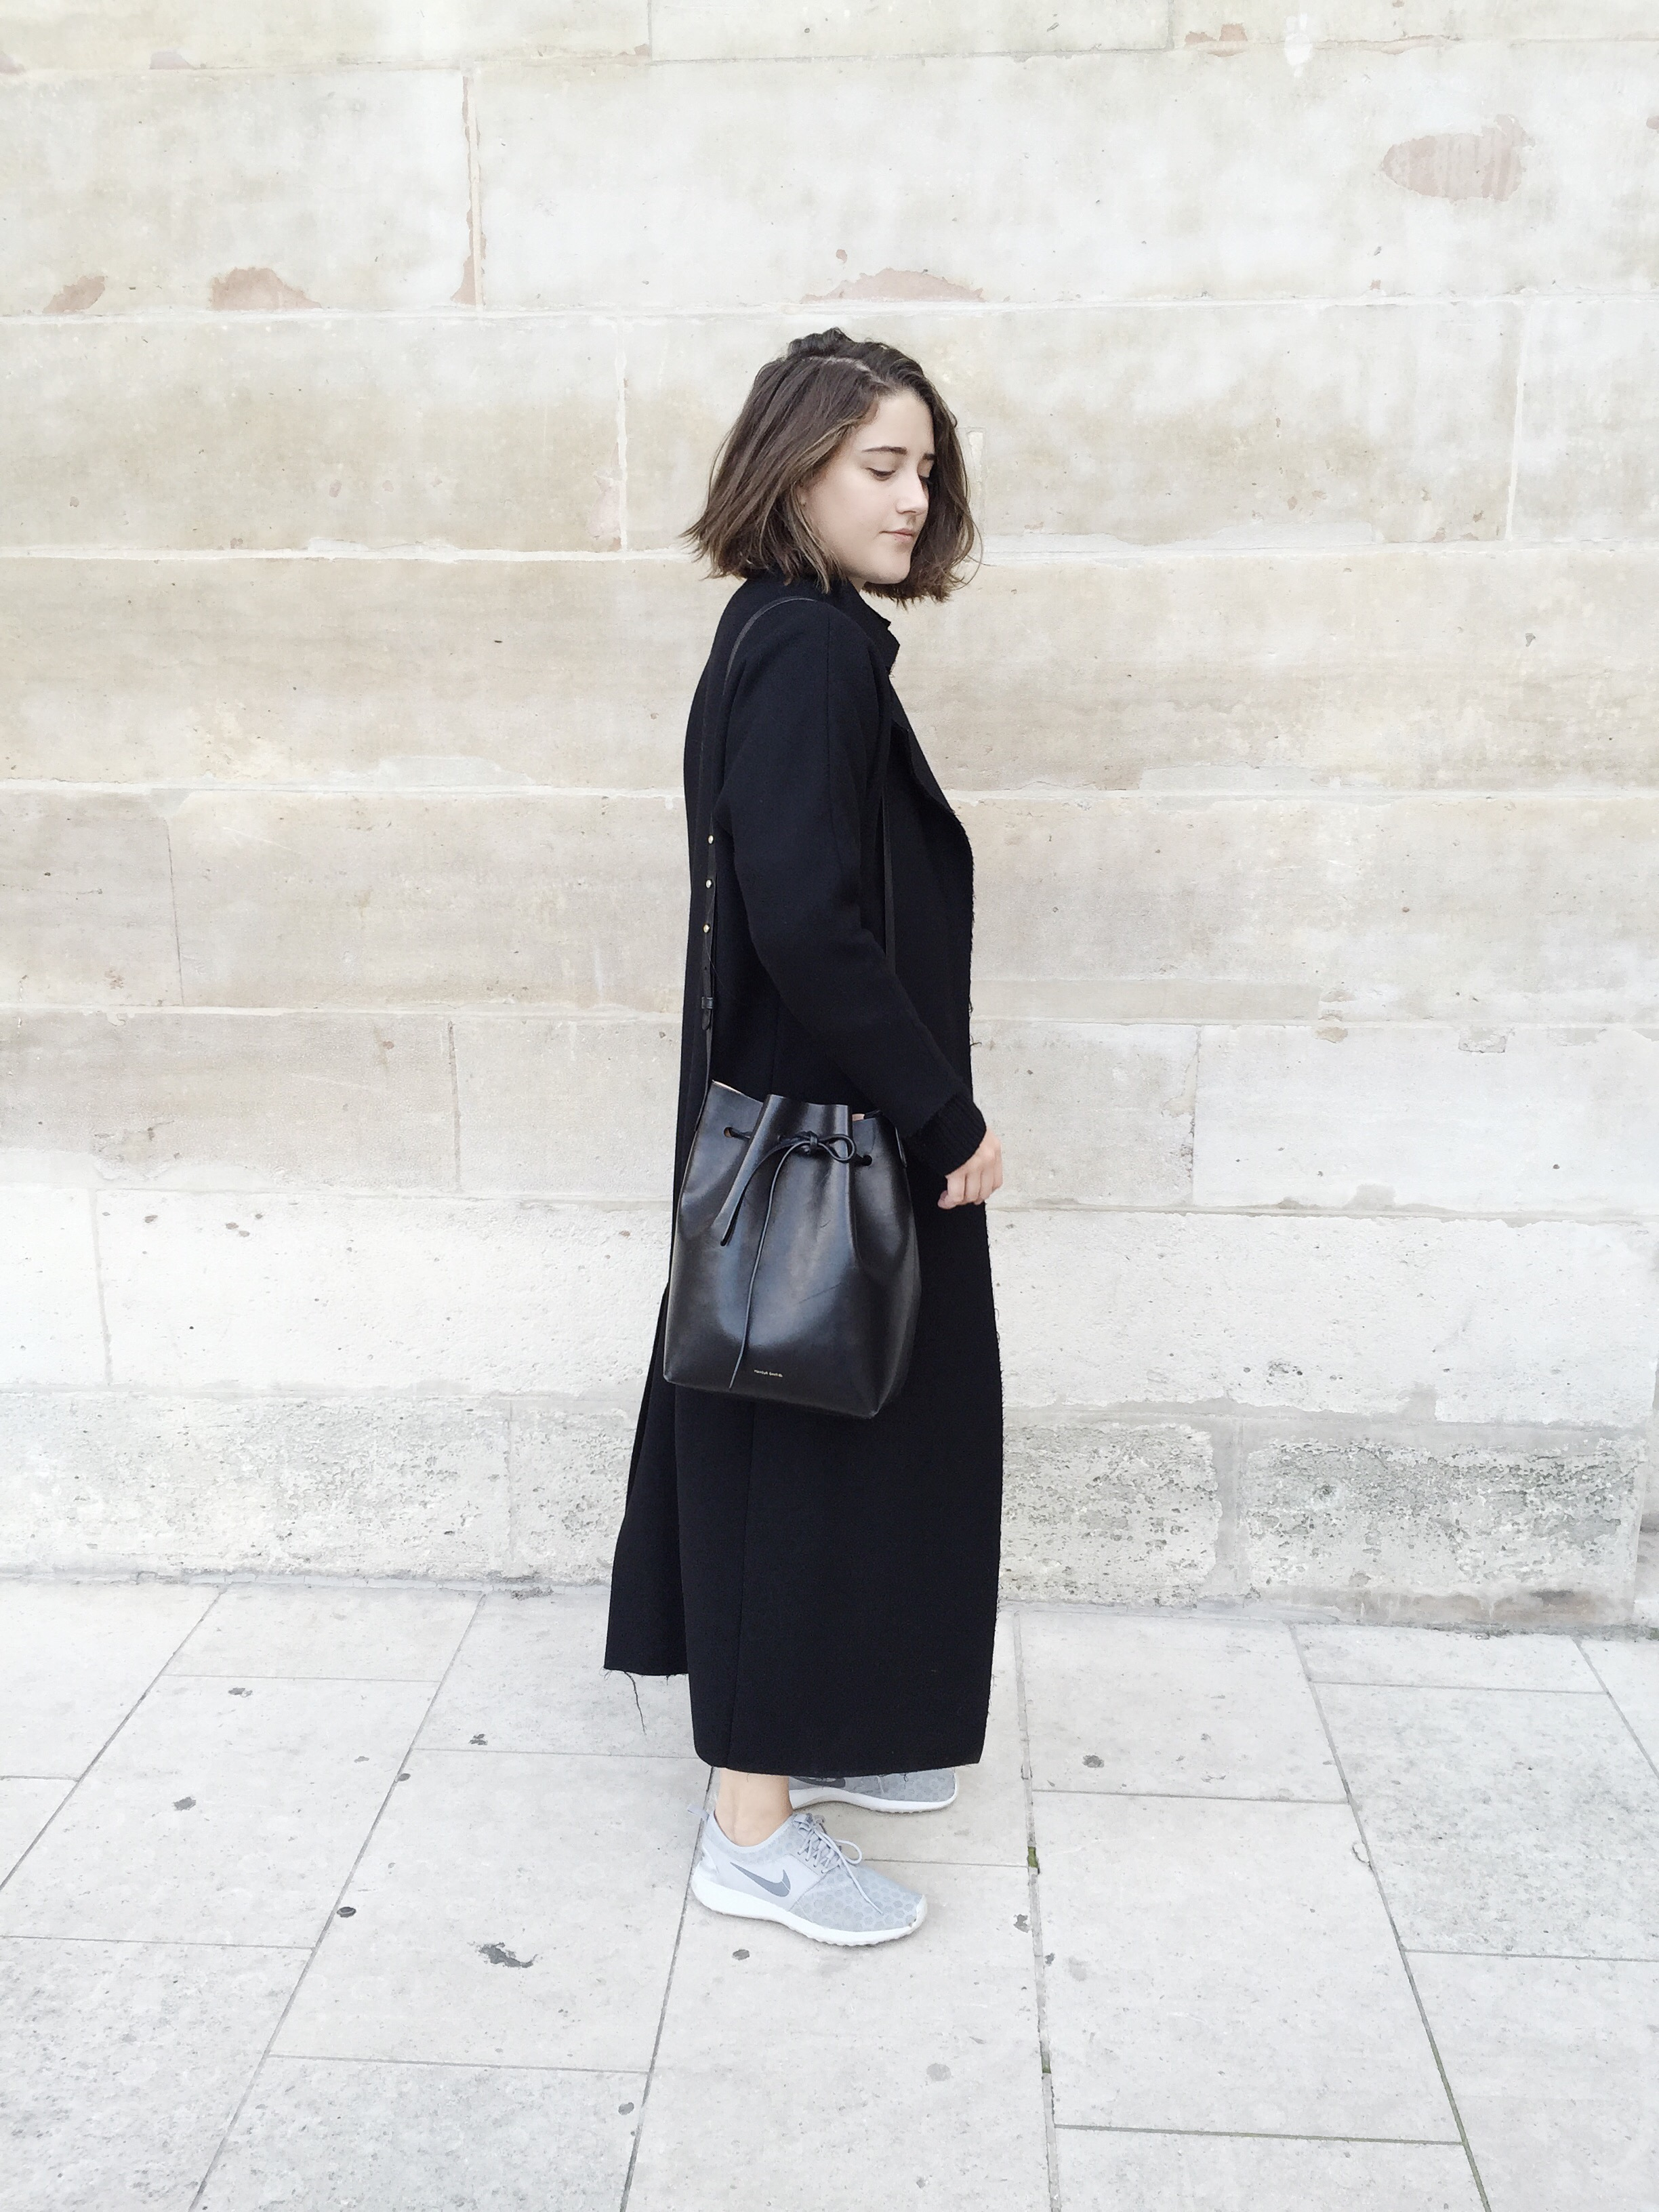 Charlie May wearing Mansur Gavriel